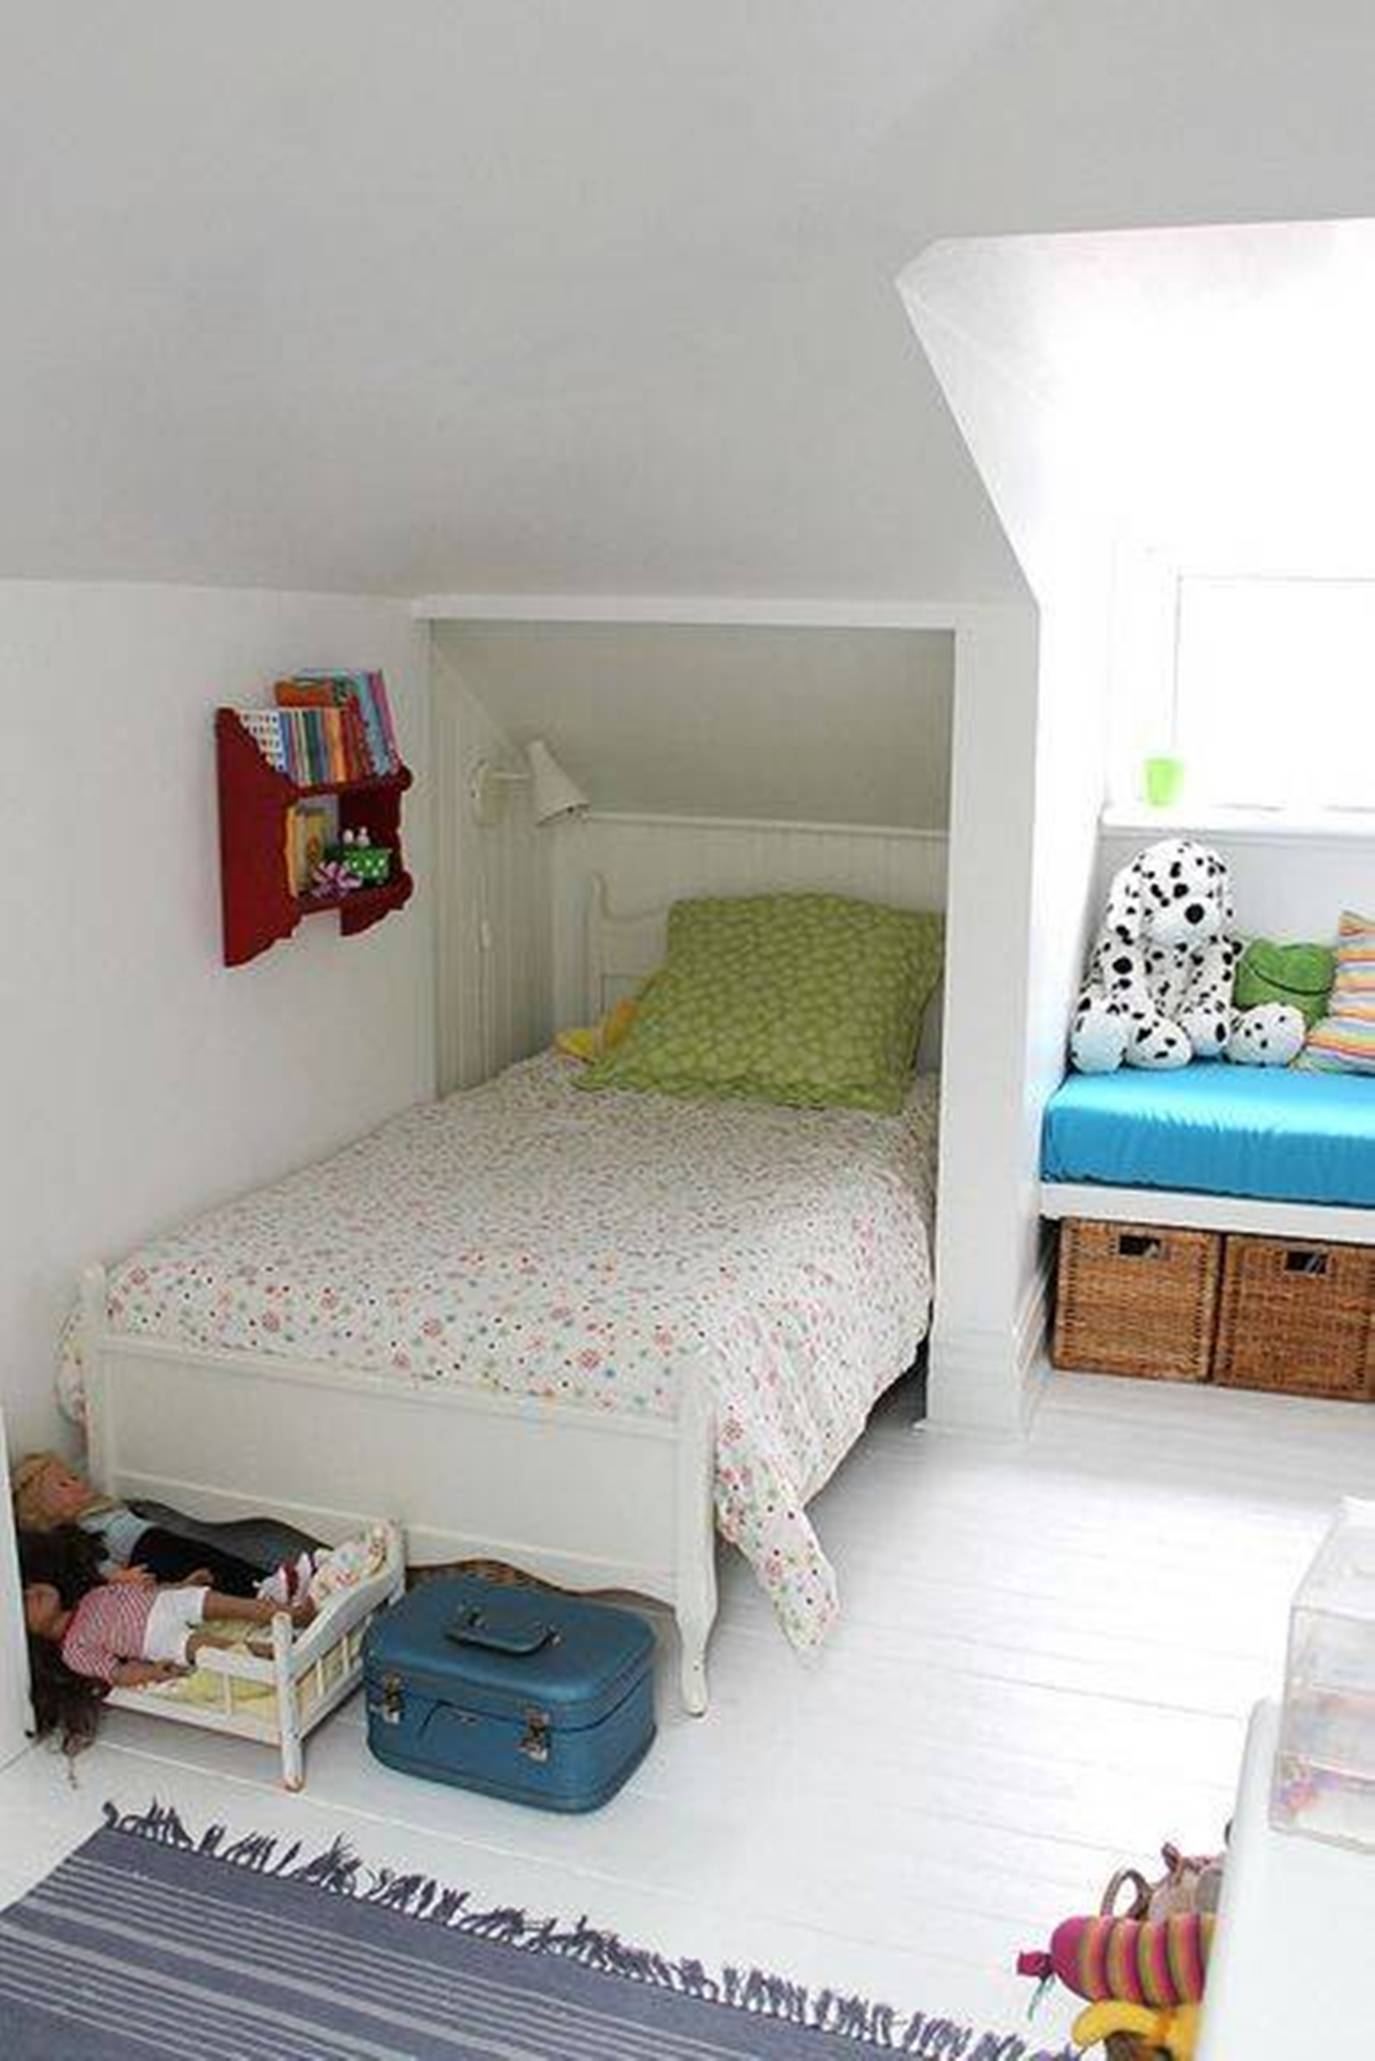 Adorable Designs For An Attic Space: small space design ideas